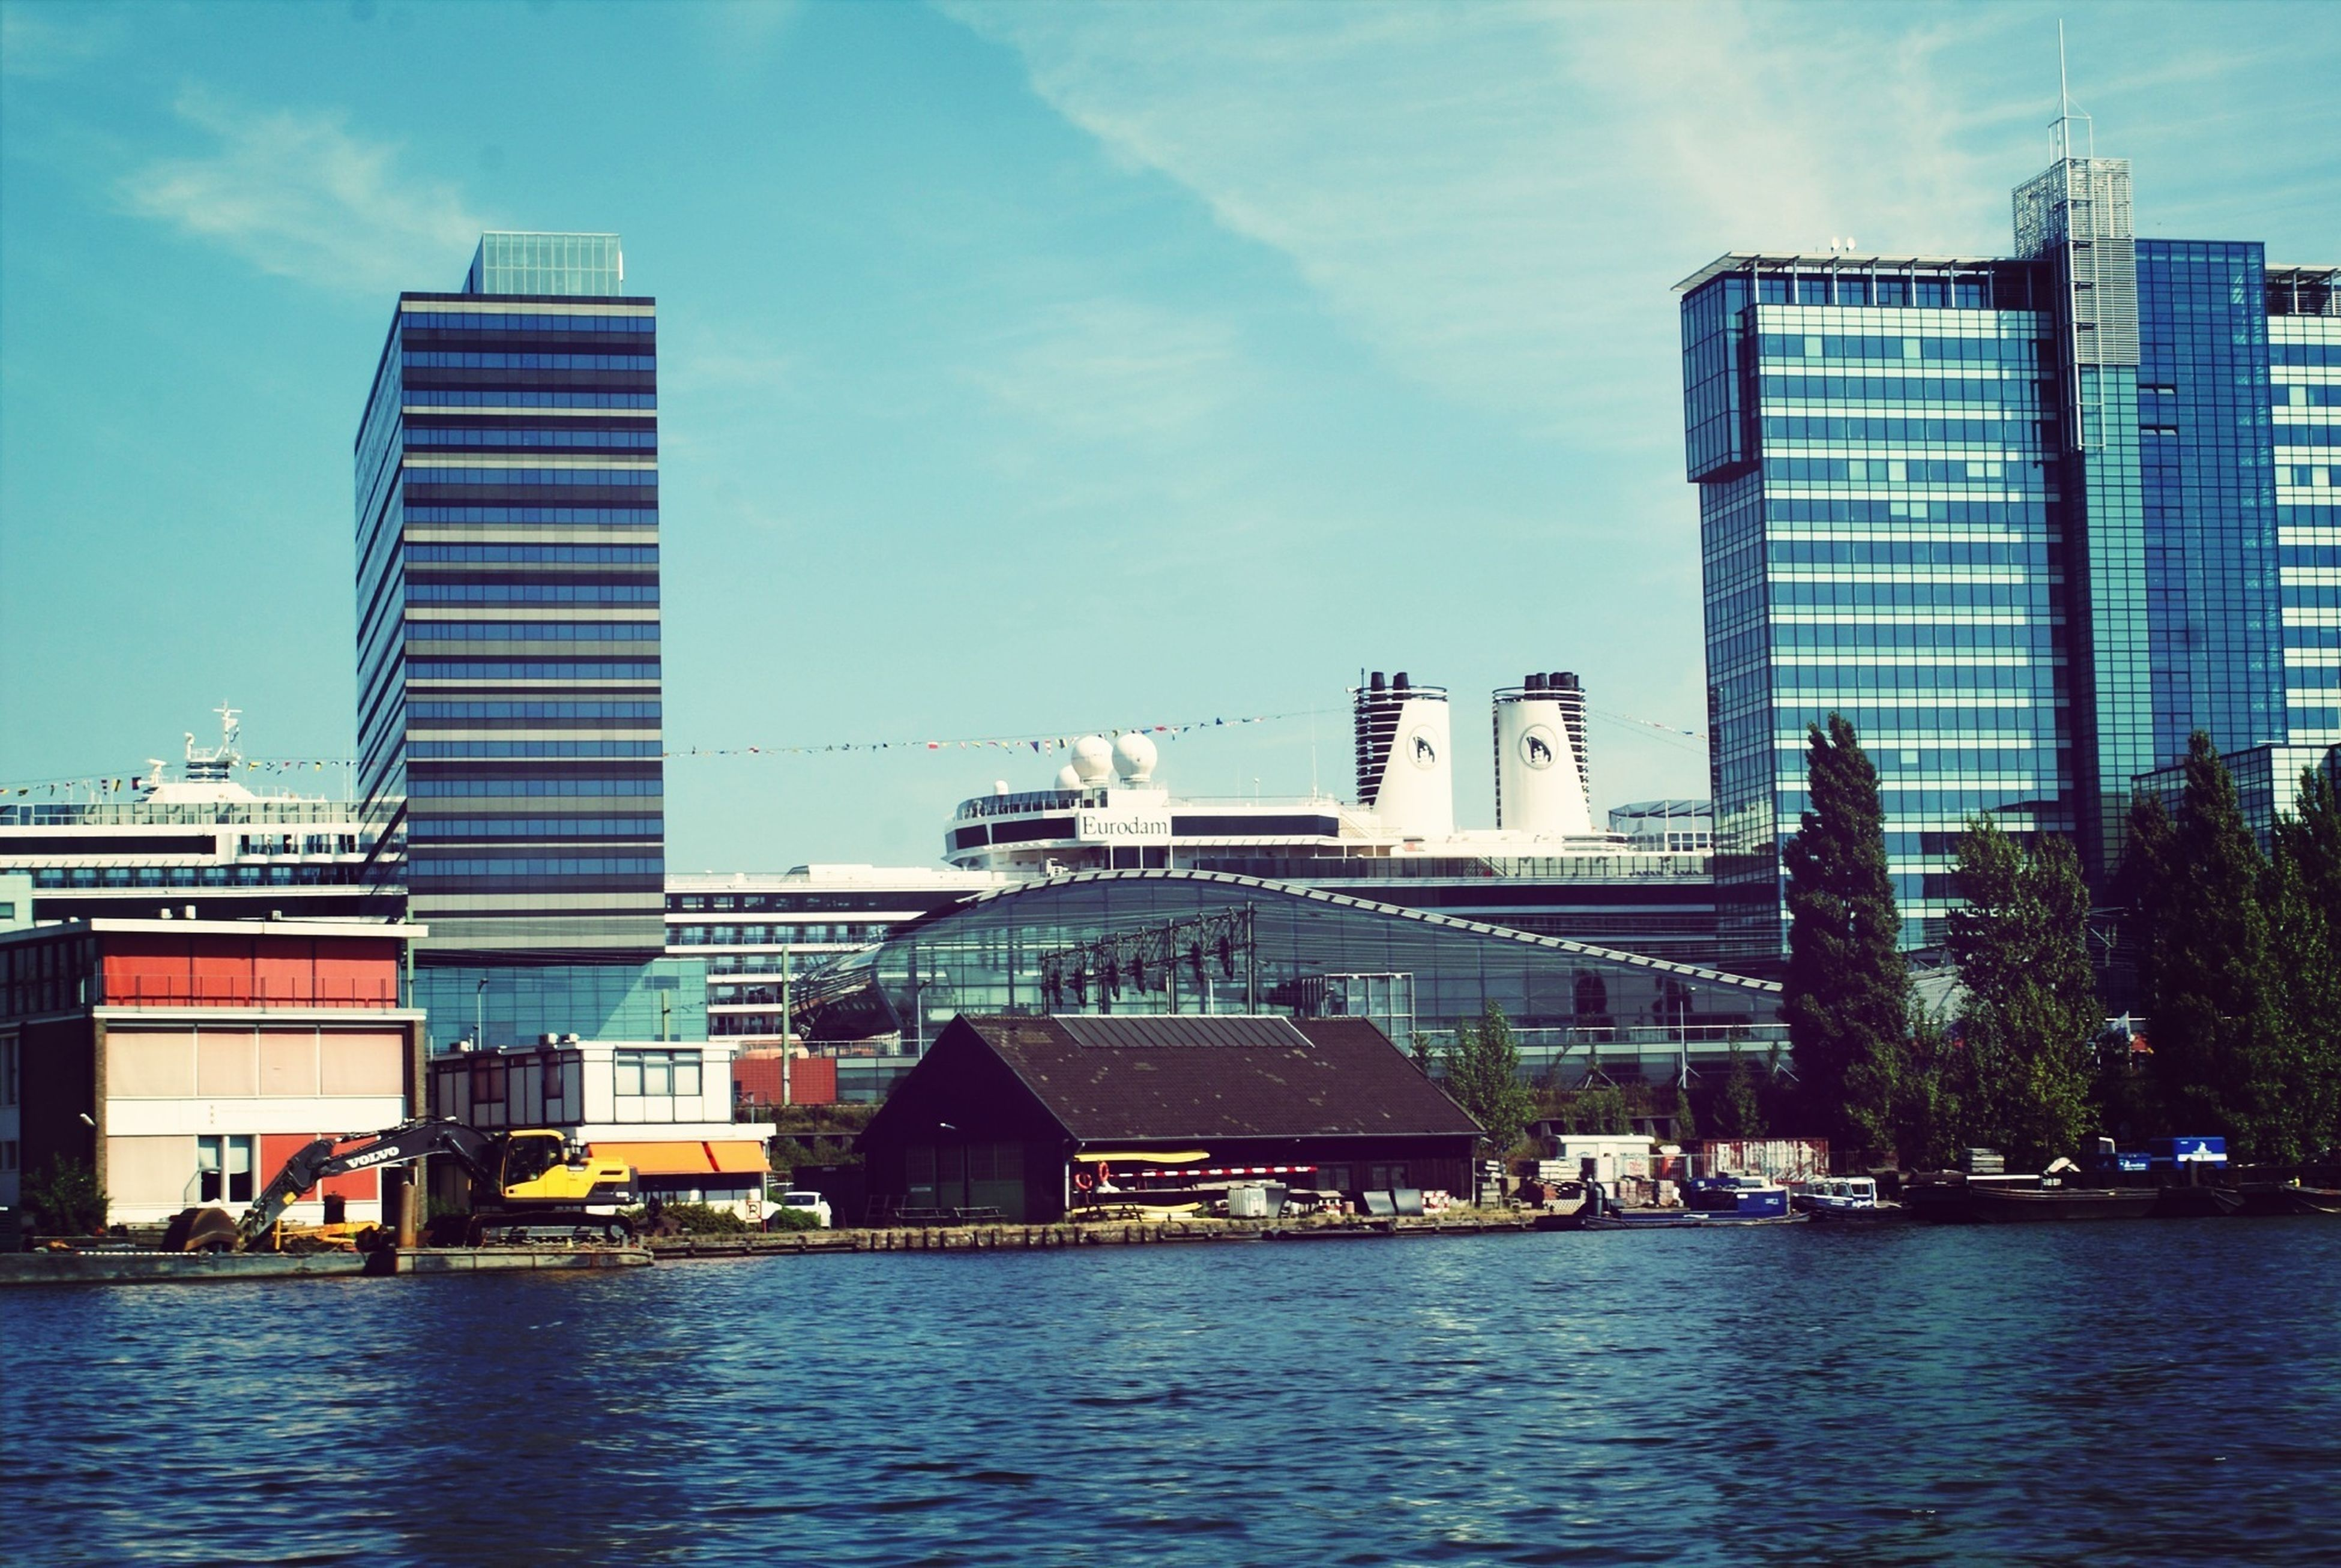 architecture, building exterior, built structure, waterfront, water, sky, city, river, modern, tower, tall - high, travel destinations, travel, cloud - sky, building, office building, capital cities, day, skyscraper, outdoors